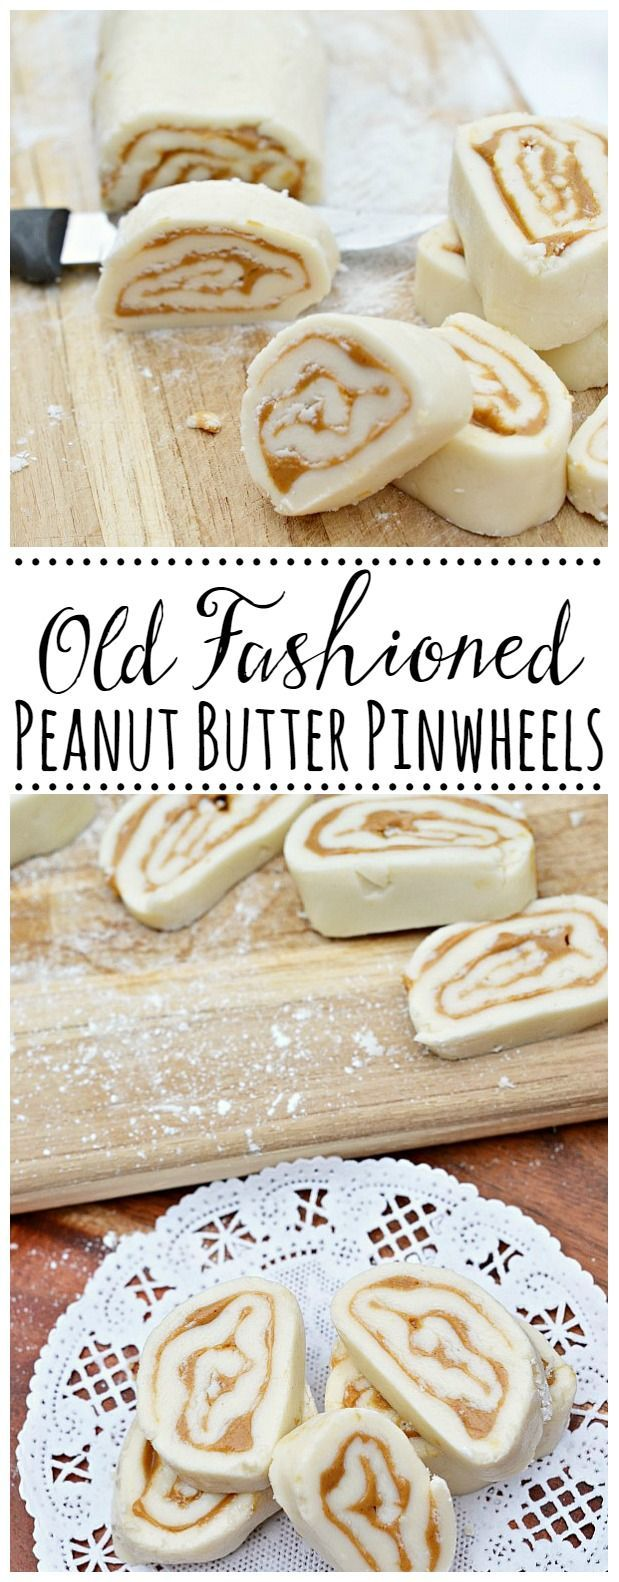 Fashioned Peanut Butter Pinwheels Old fashioned peanut butter pinwheels.  A simple sweet treat that melts in your mouth and tastes just like peanut butter fudge!Old fashioned peanut butter pinwheels.  A simple sweet treat that melts in your mouth and tastes just like peanut butter fudge!